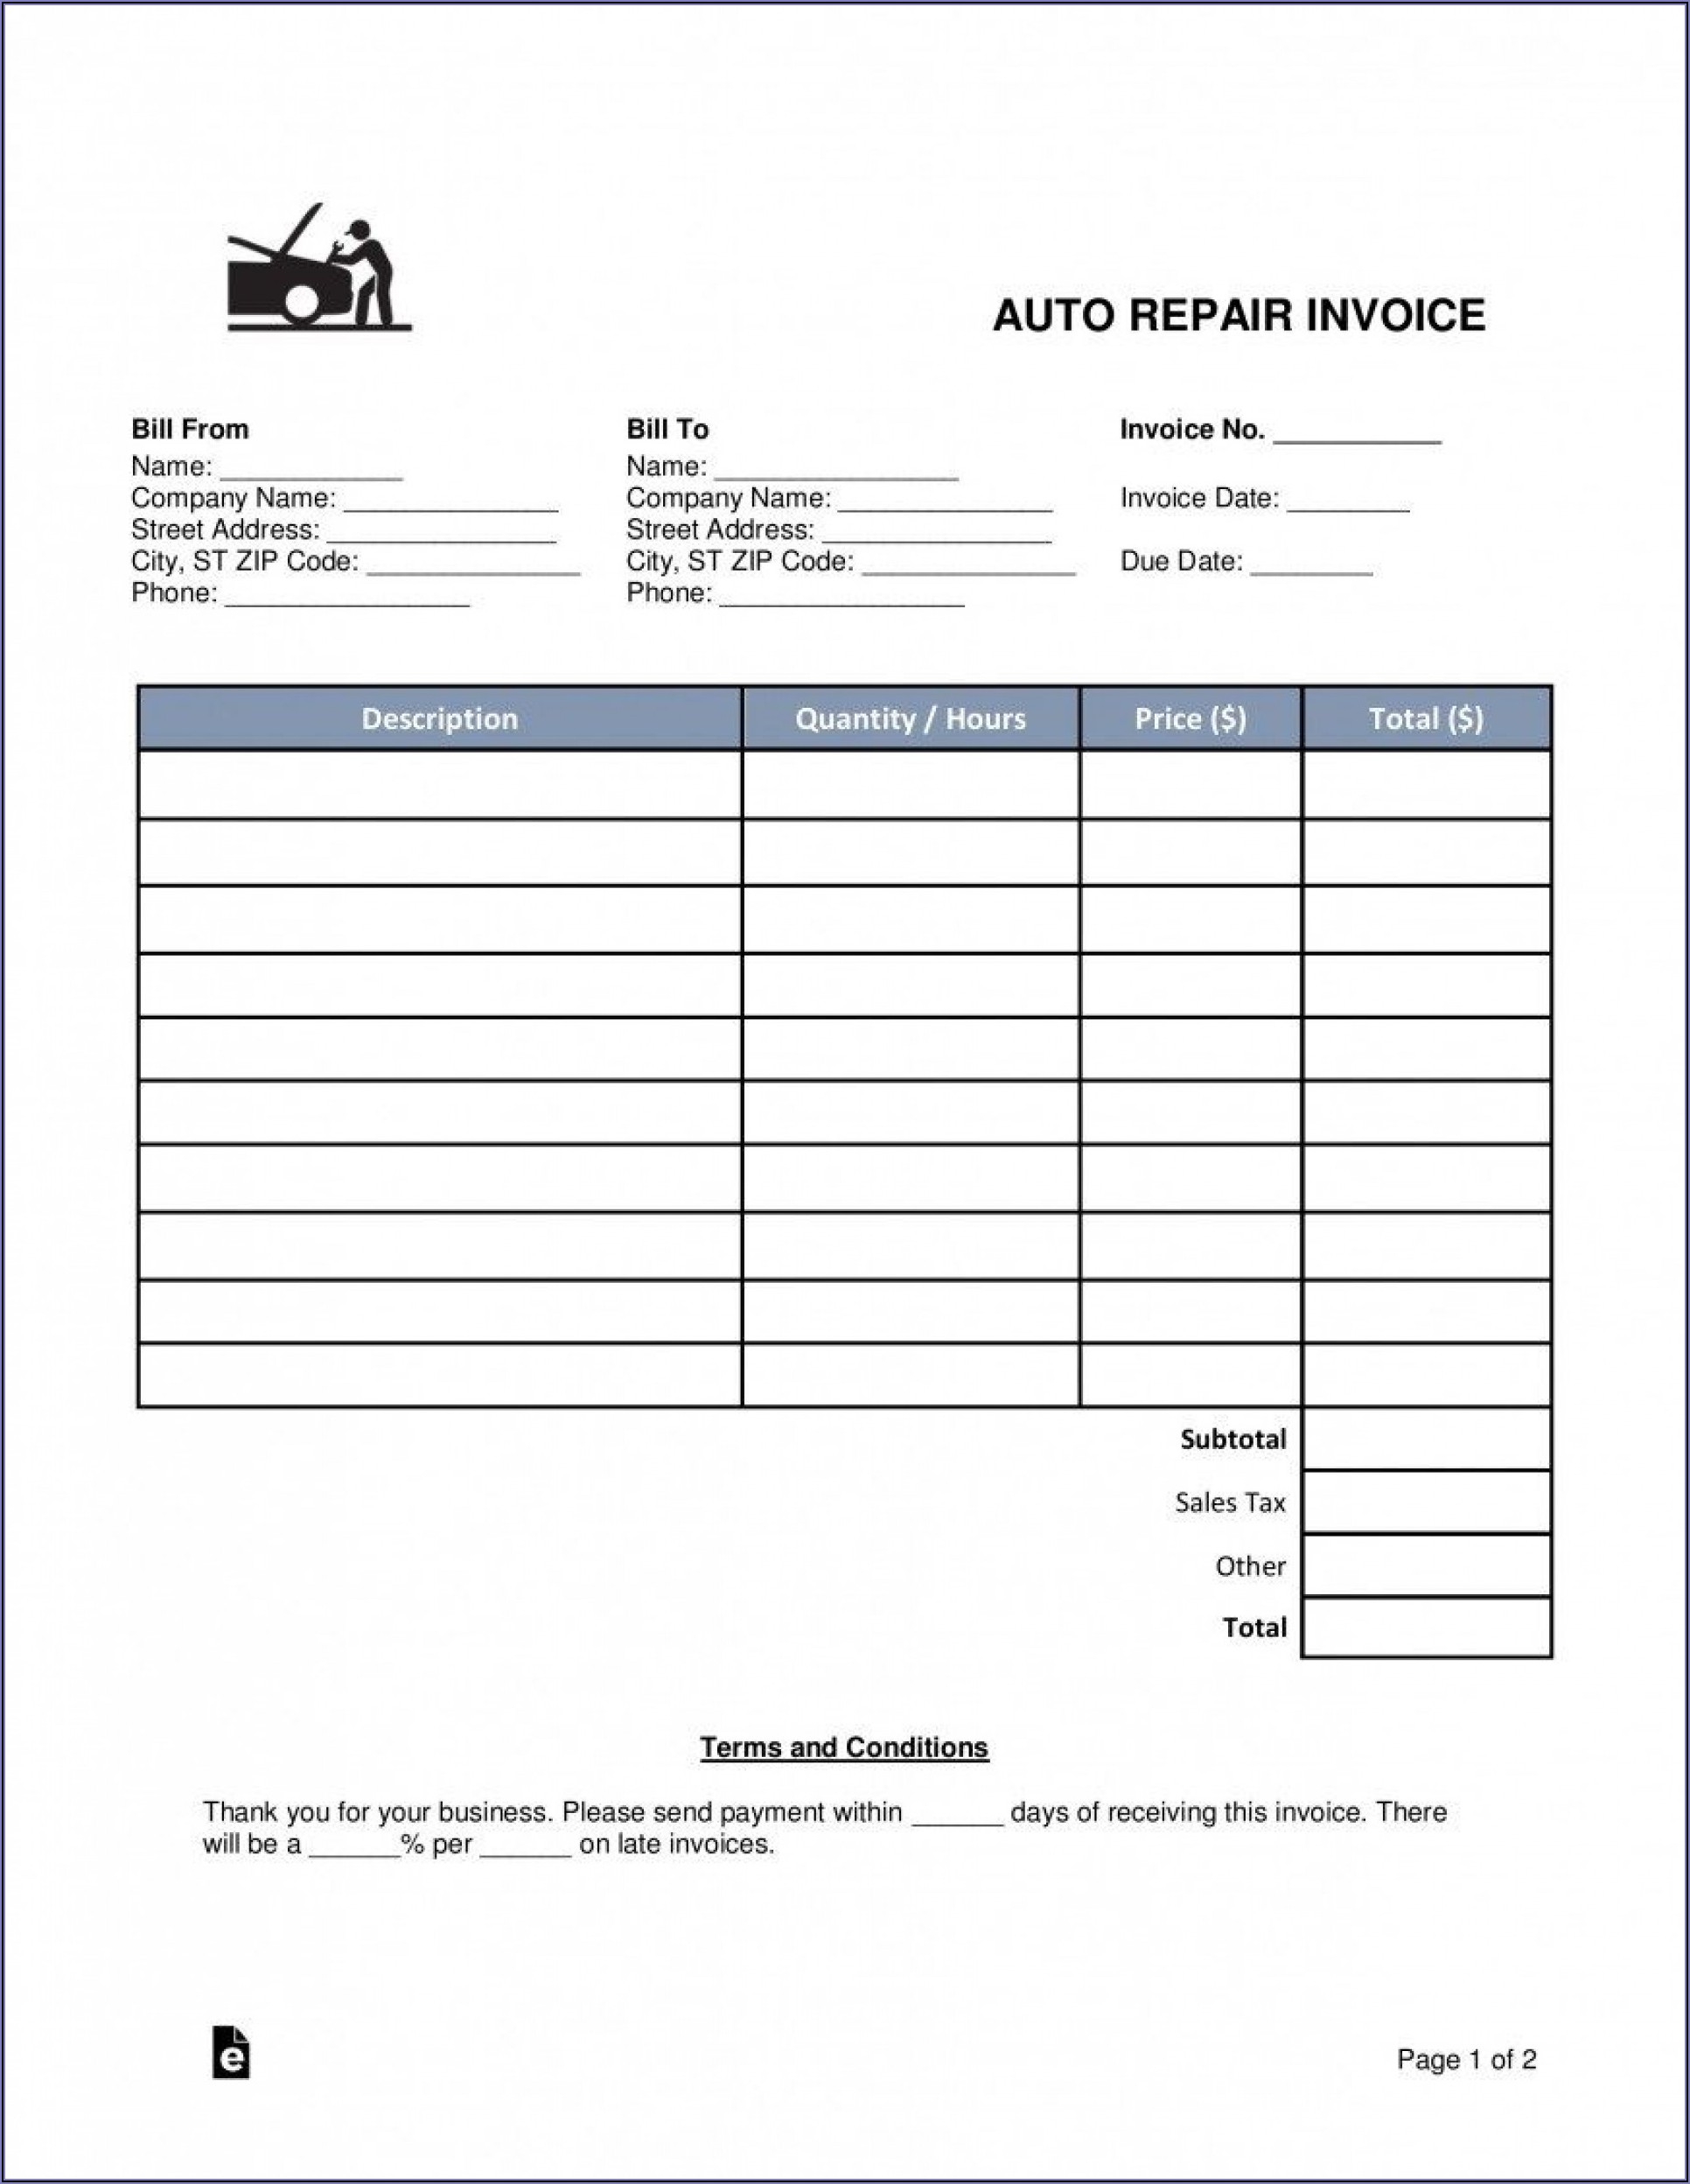 Car Repair Invoice Pdf